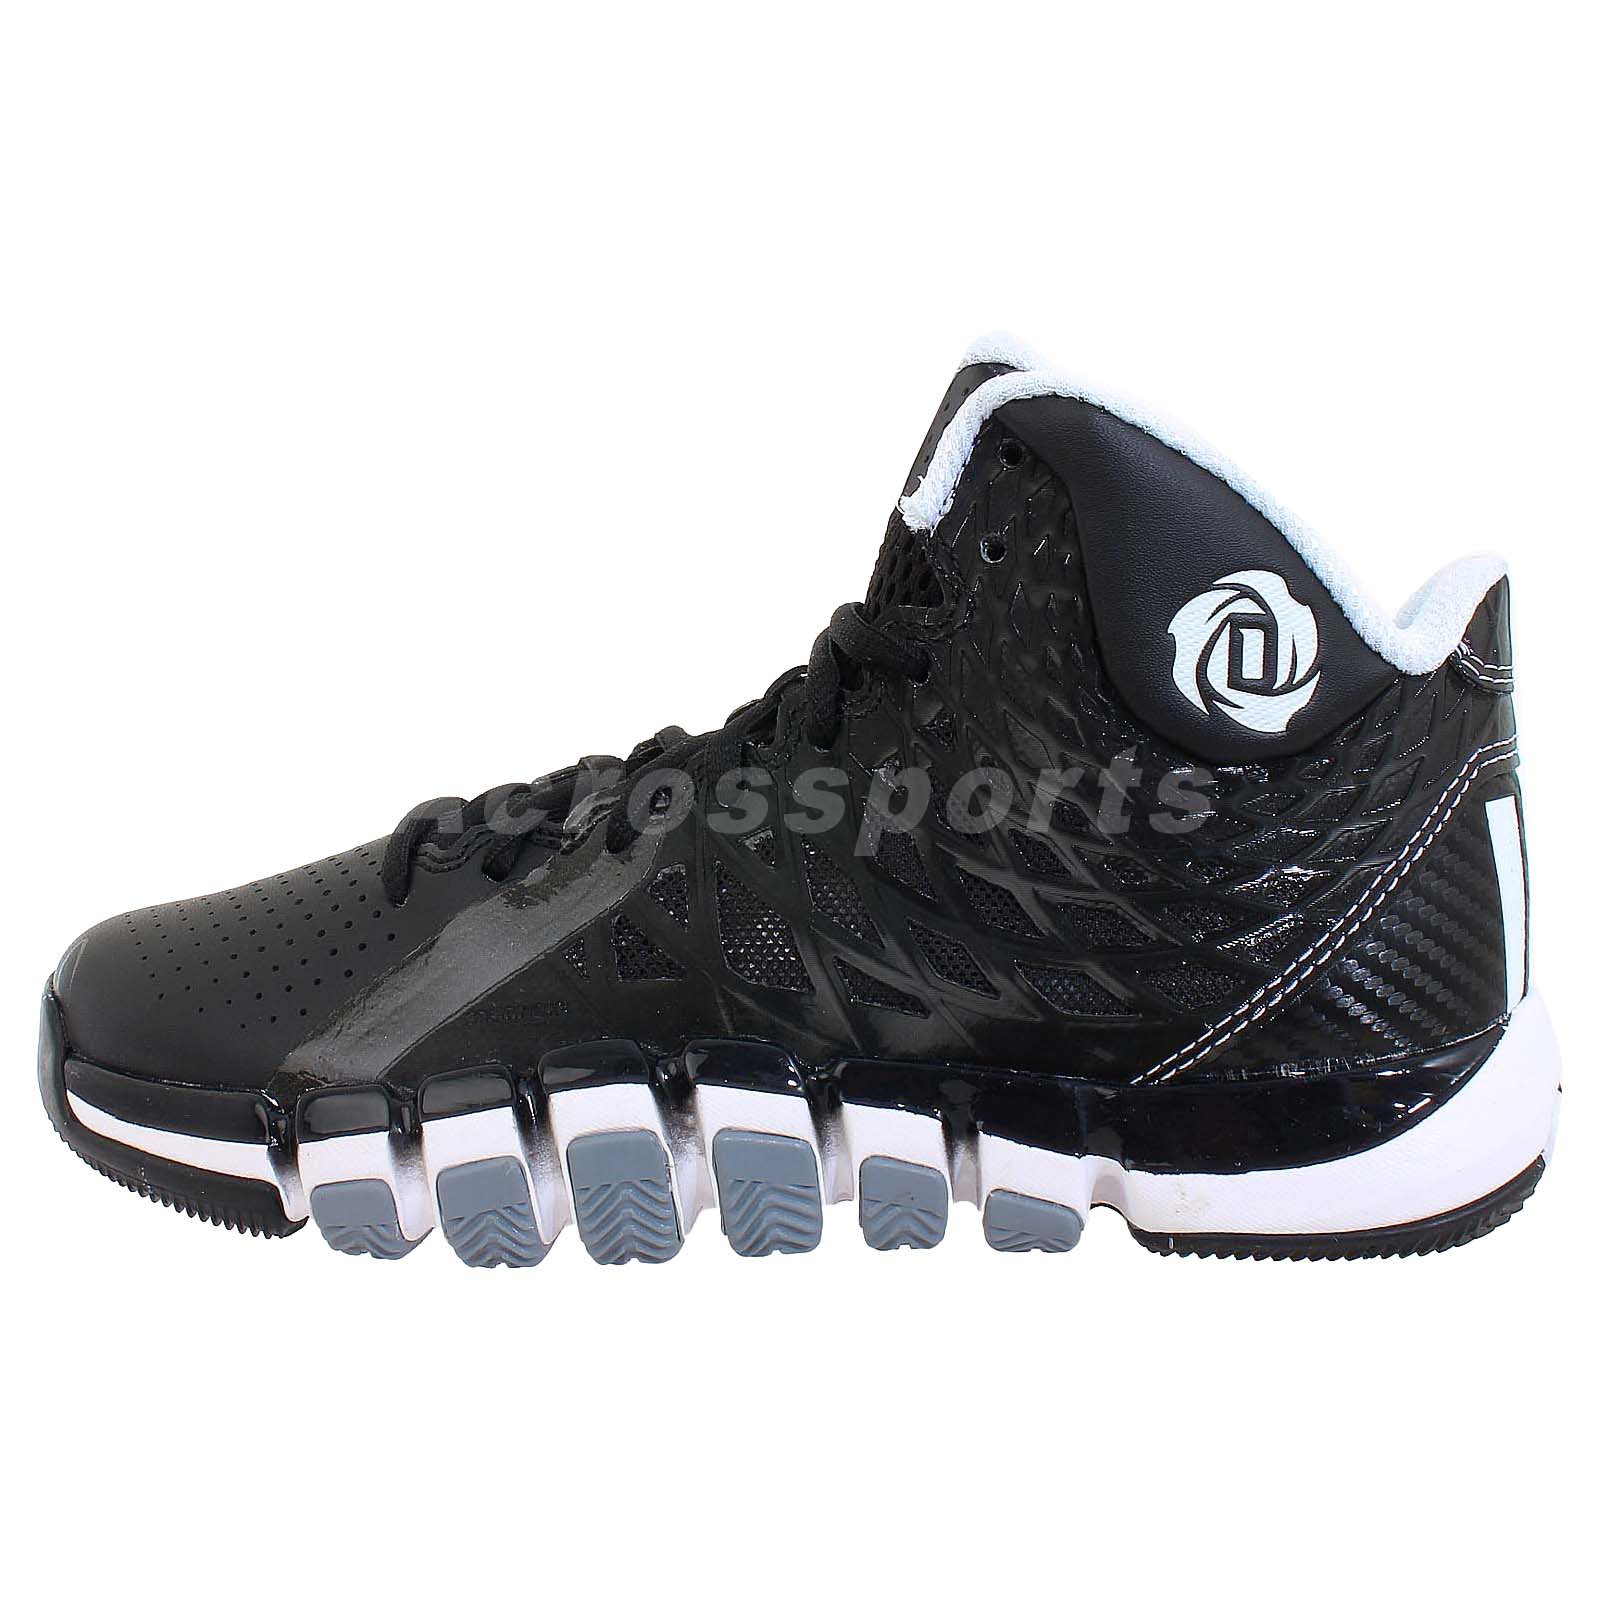 derrick rose shoes for kids - photo #17